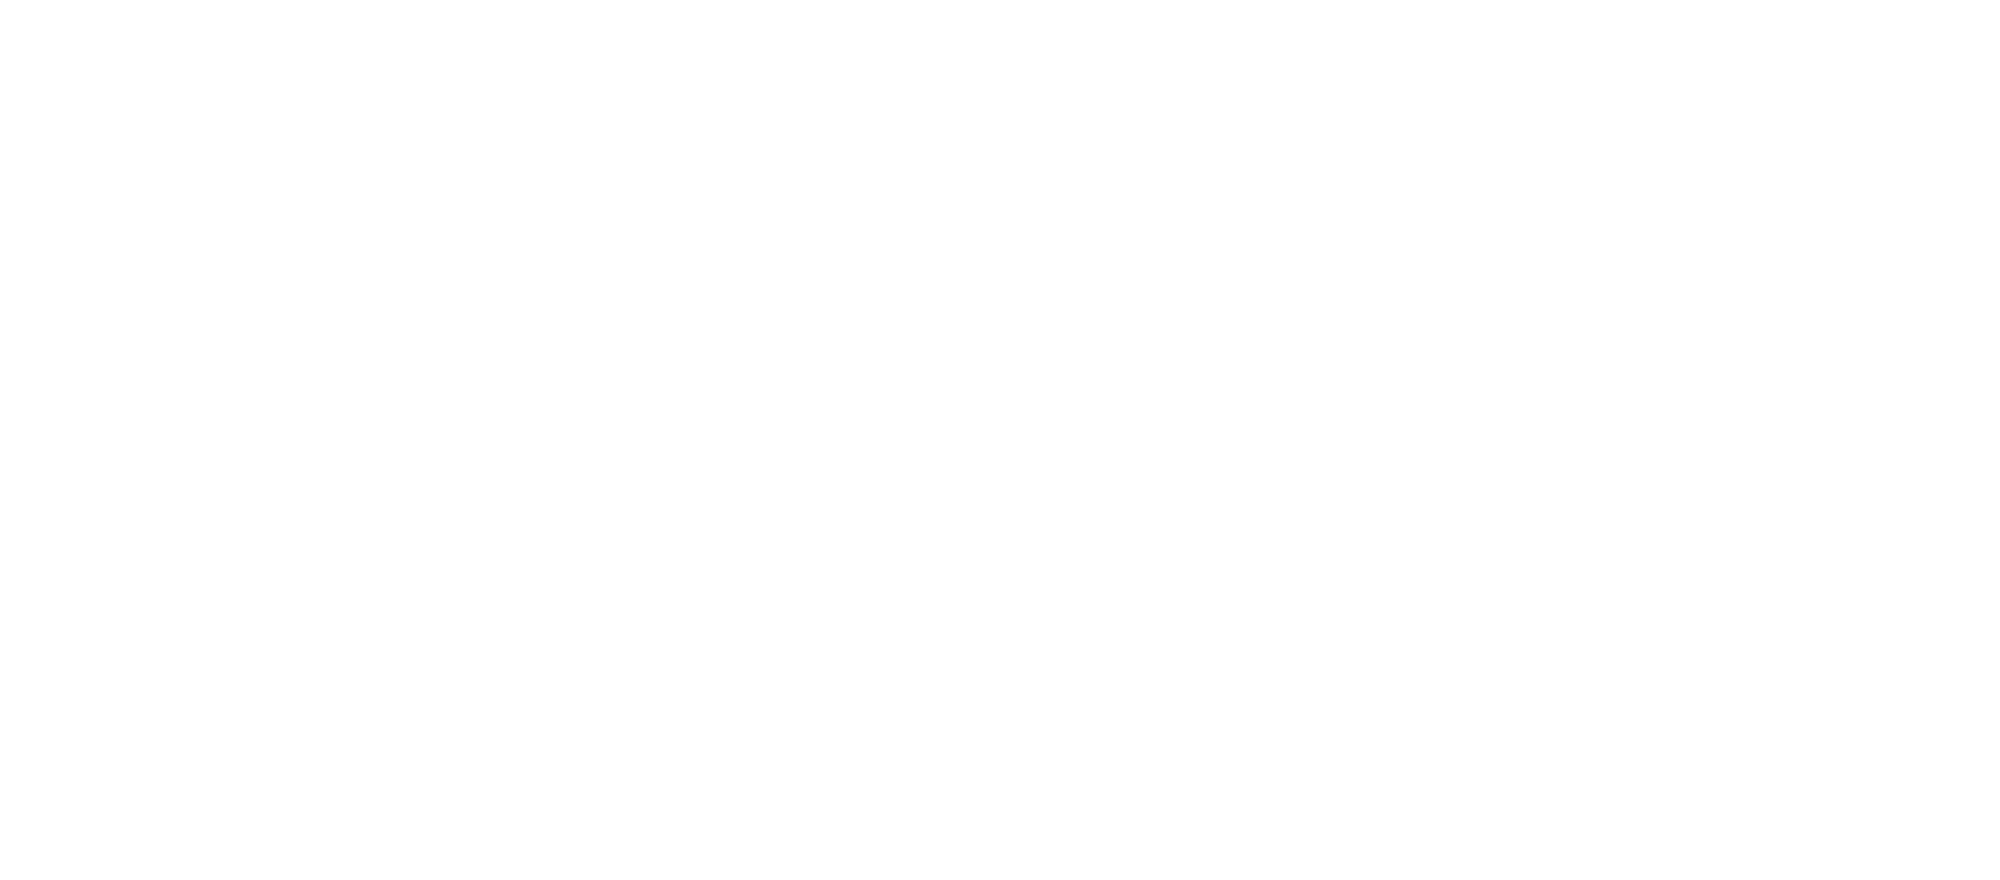 SKOUT-Cybersecurity-W@Large